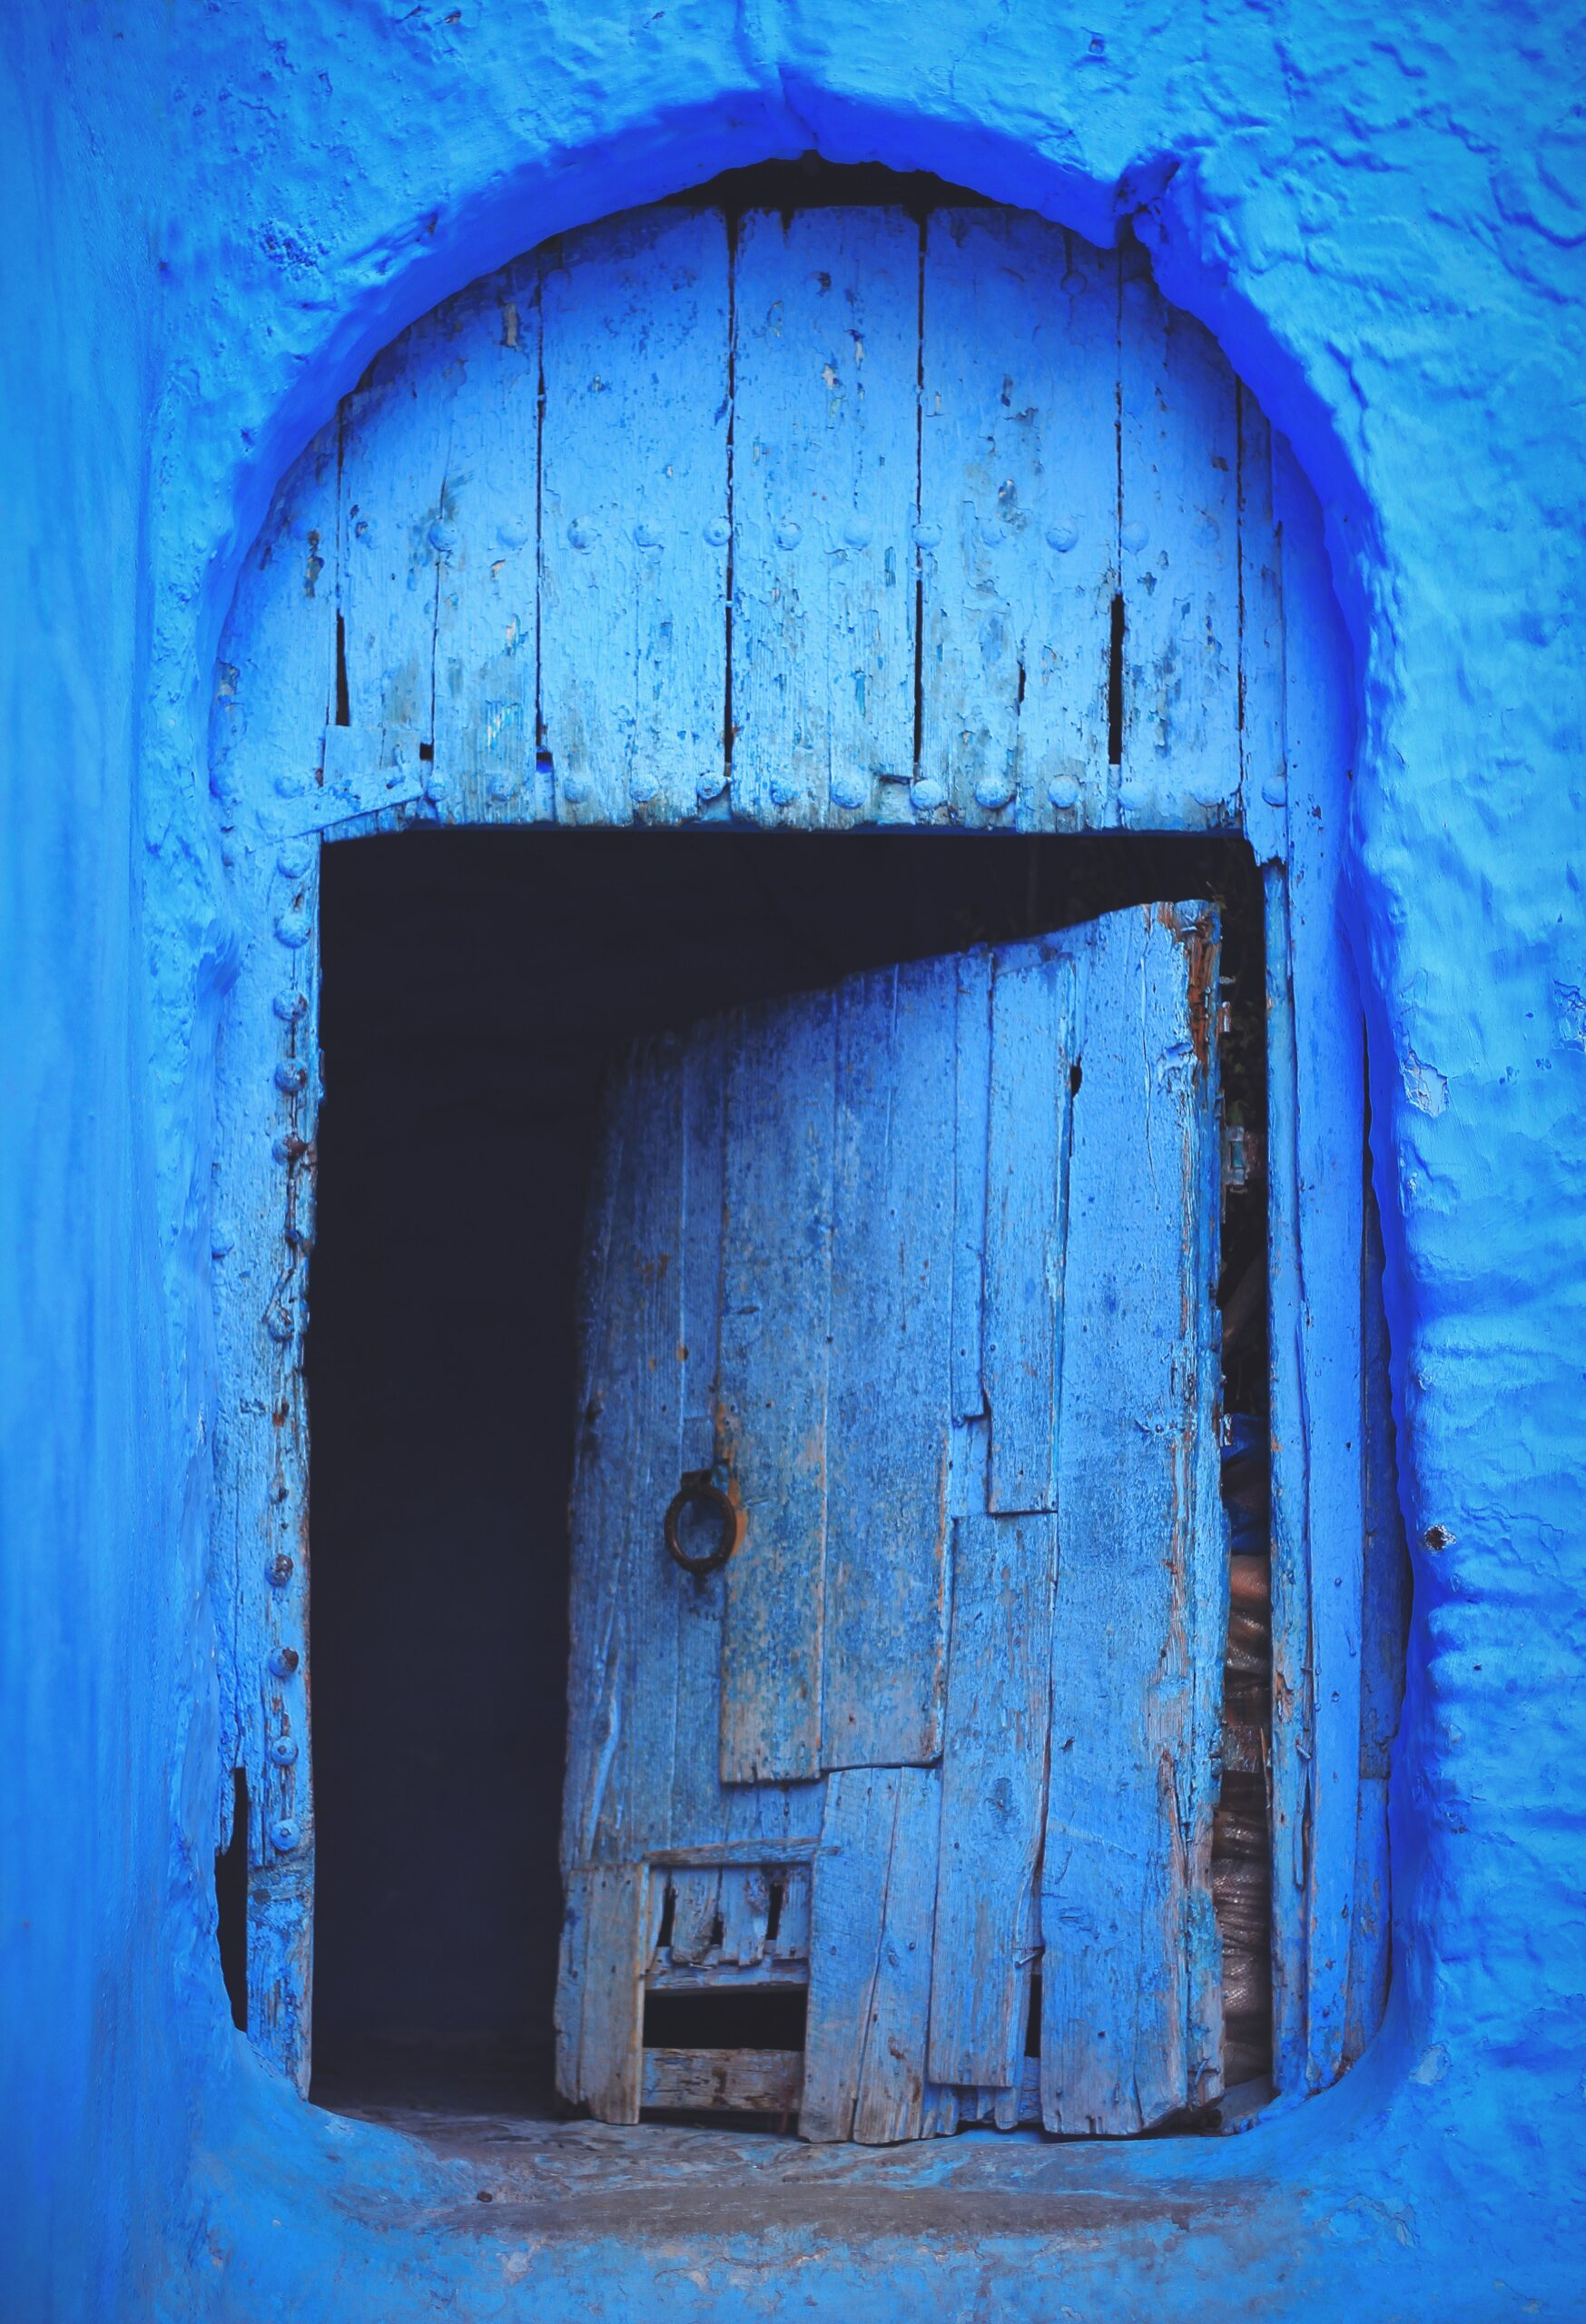 blue wooden door in wall opening inwards